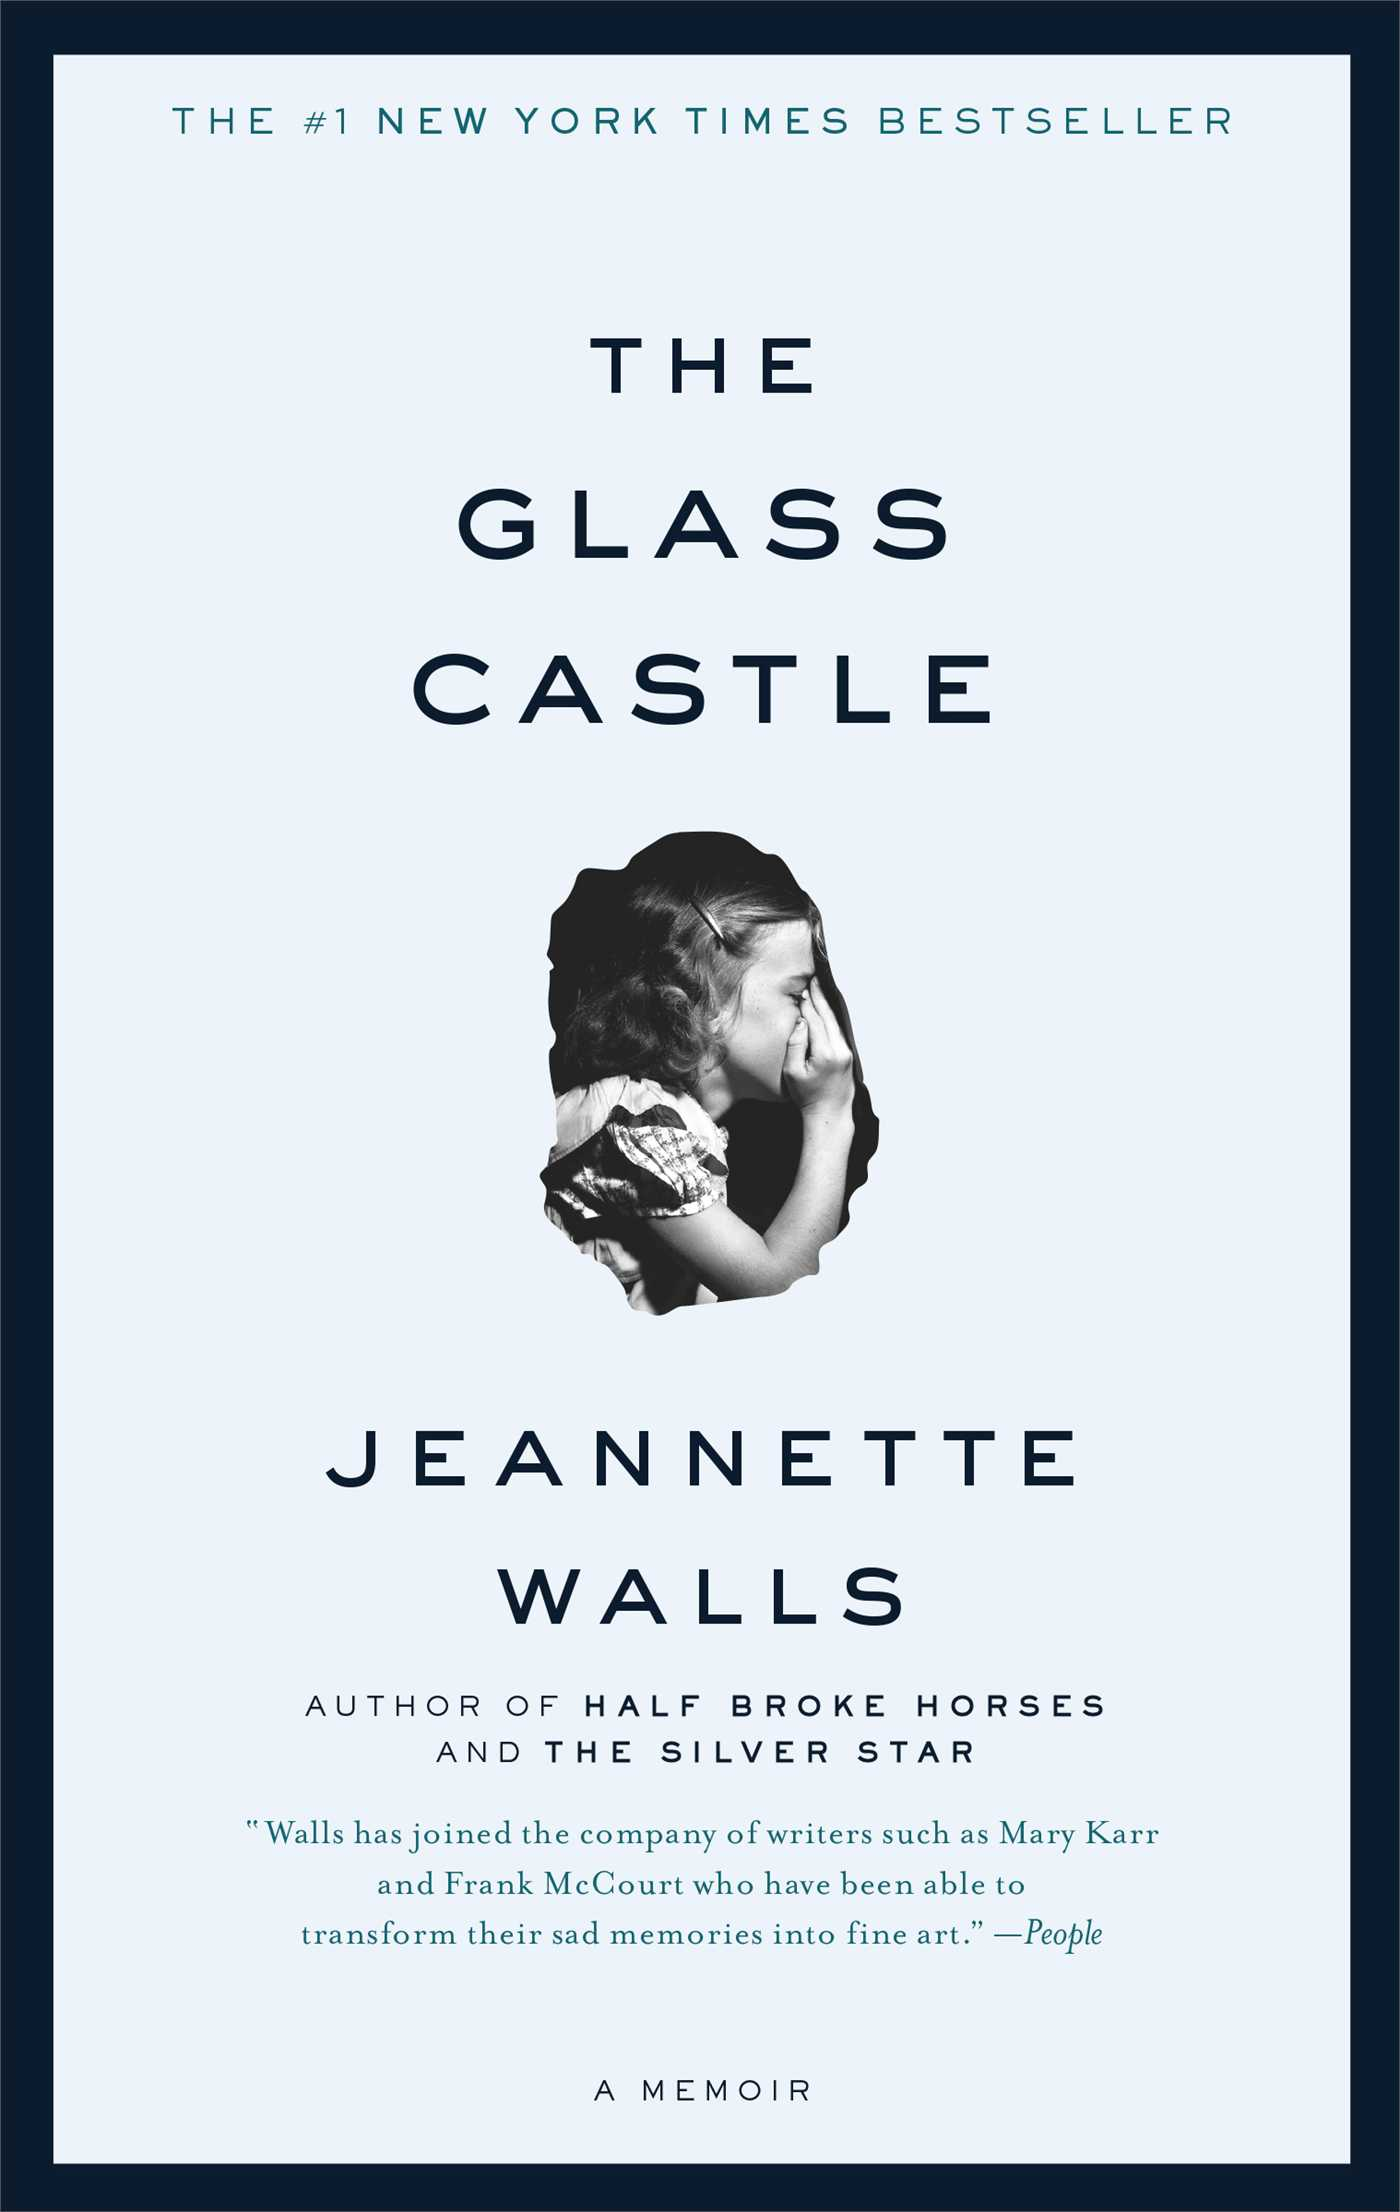 Glass castle 9780743247542 hr